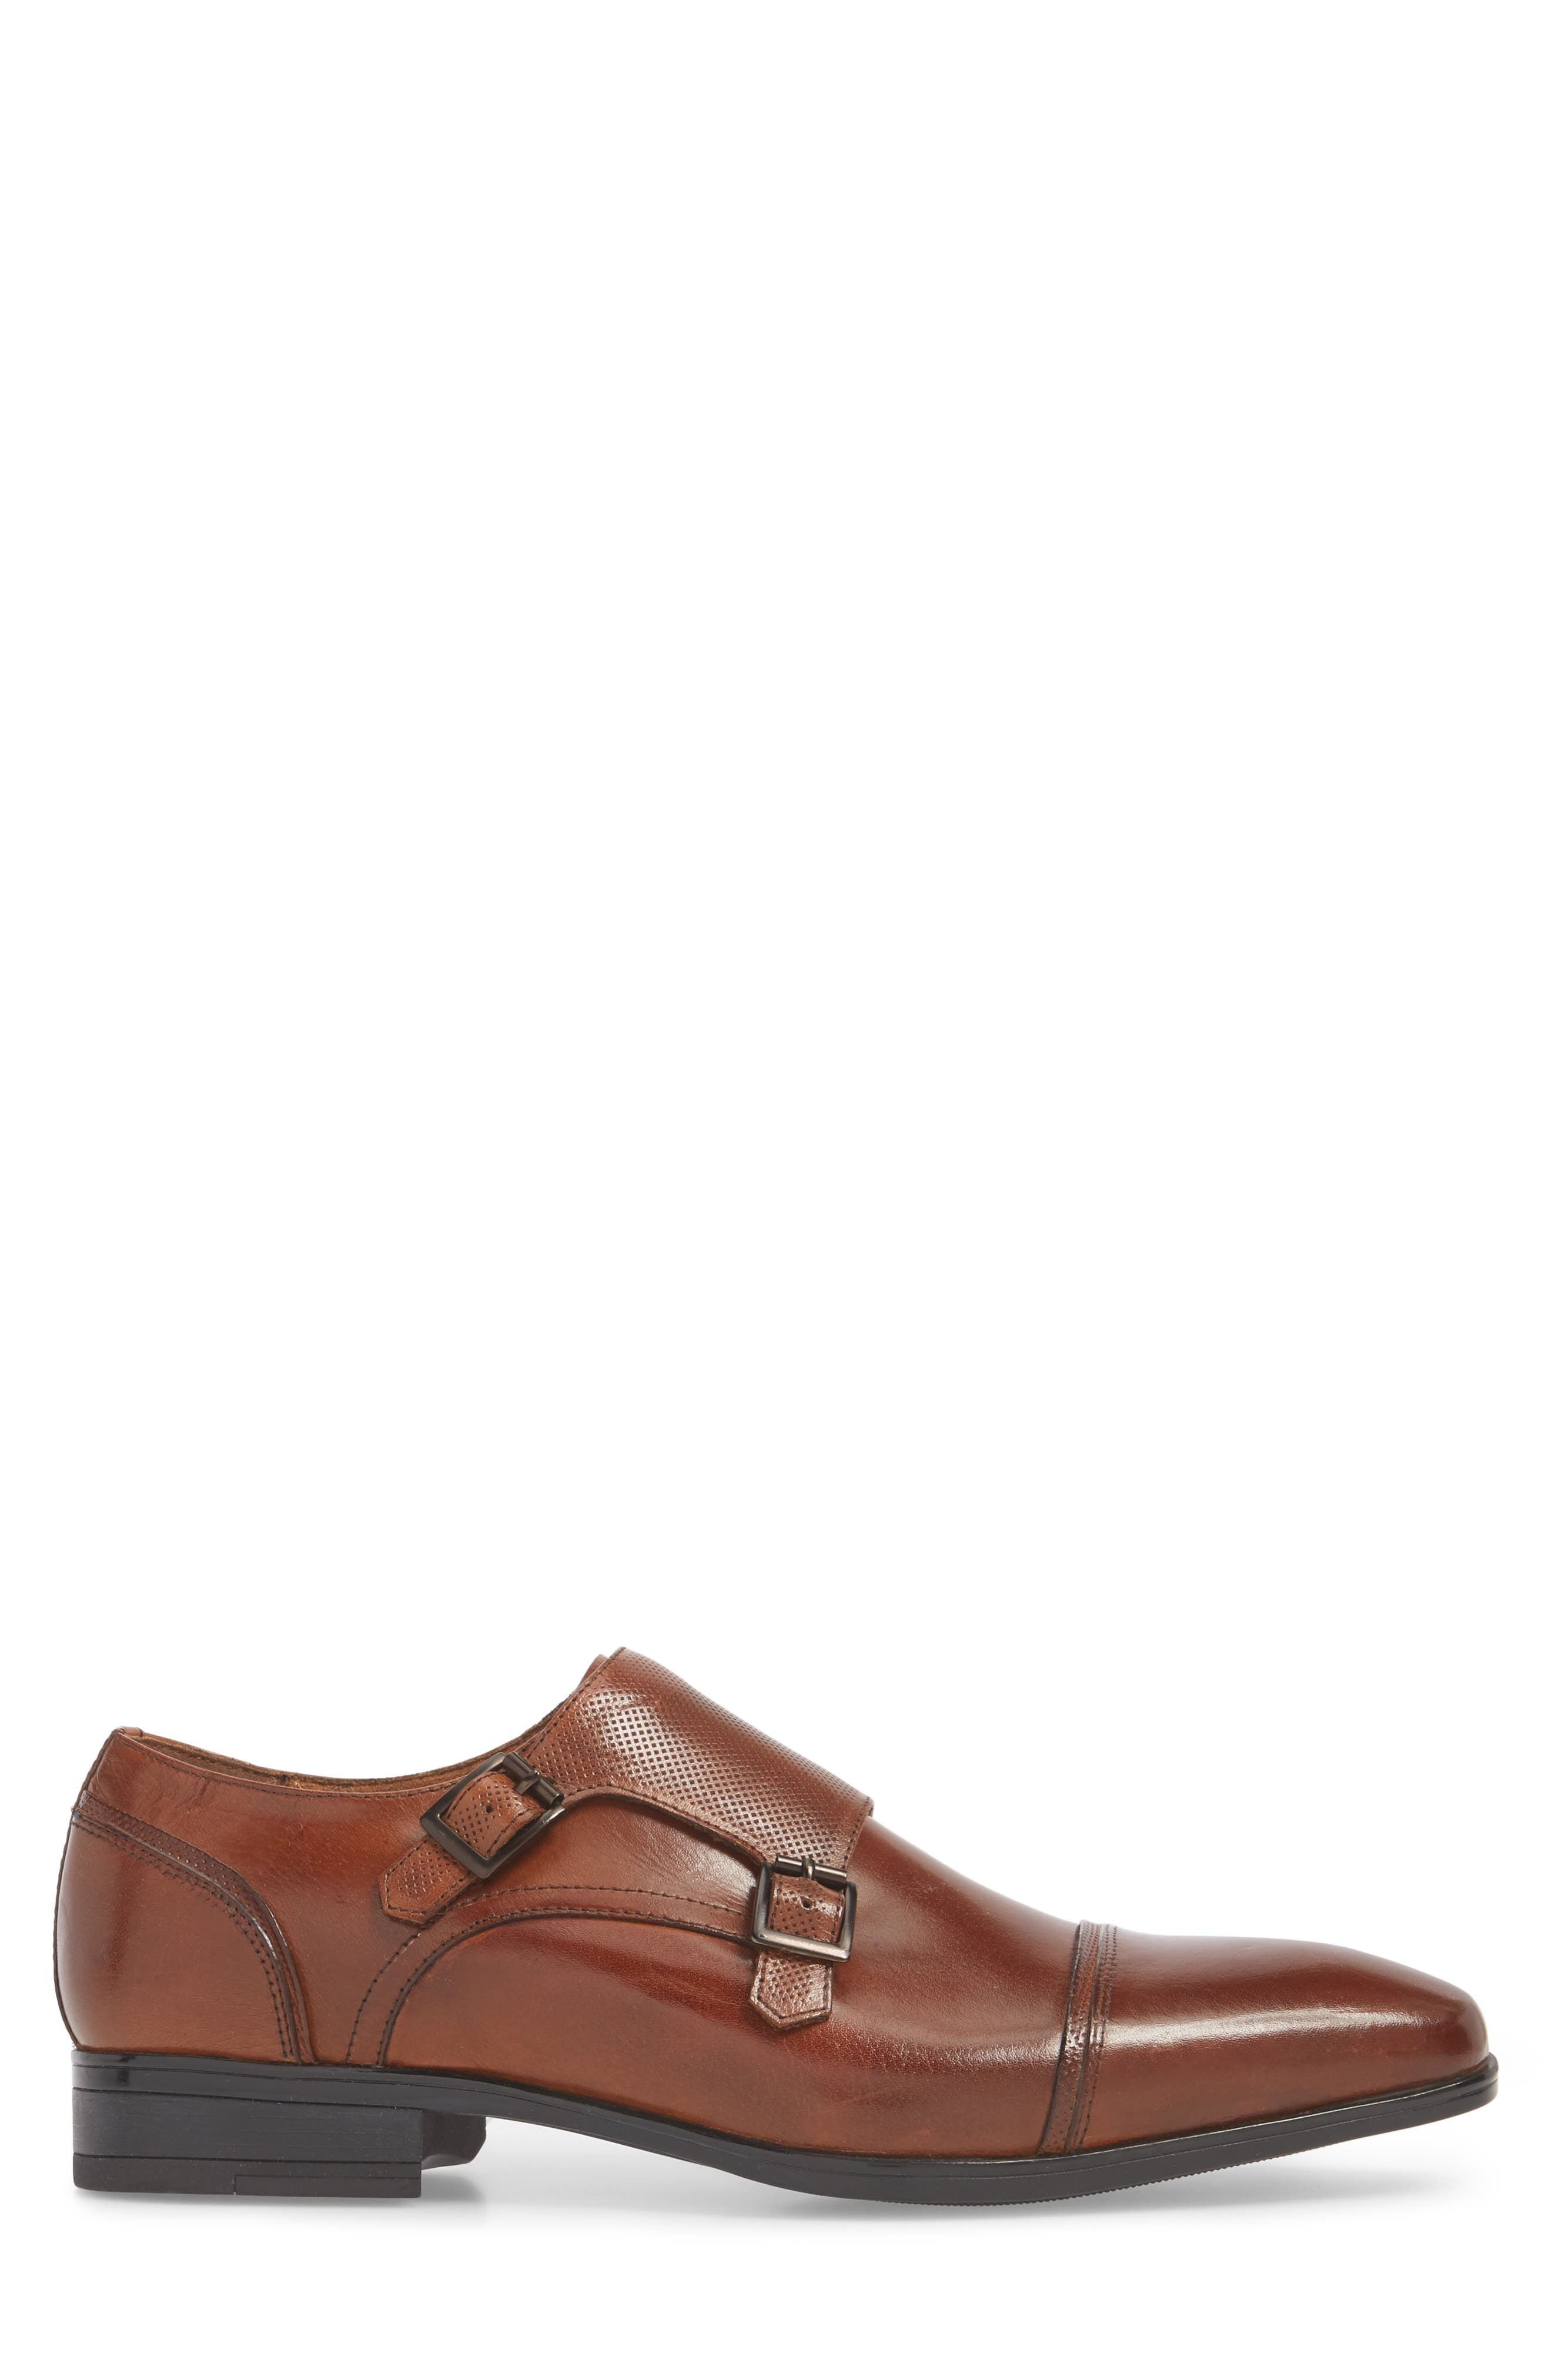 Oliver Cap Toe Monk Shoe,                             Alternate thumbnail 3, color,                             Cognac Leather